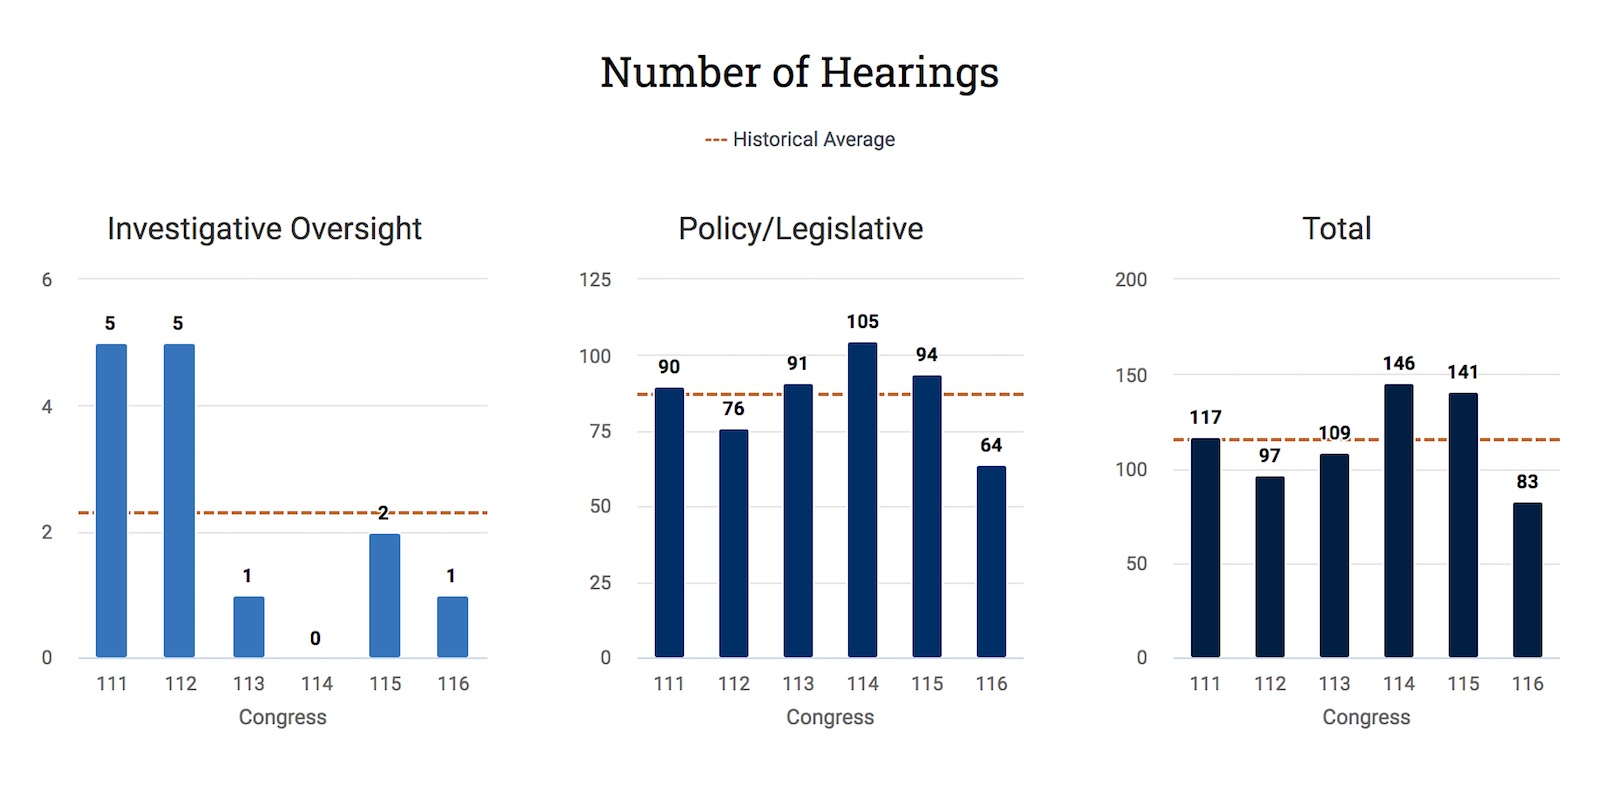 Charts displaying the number of hearings for a committee by category and compared to the historical average.